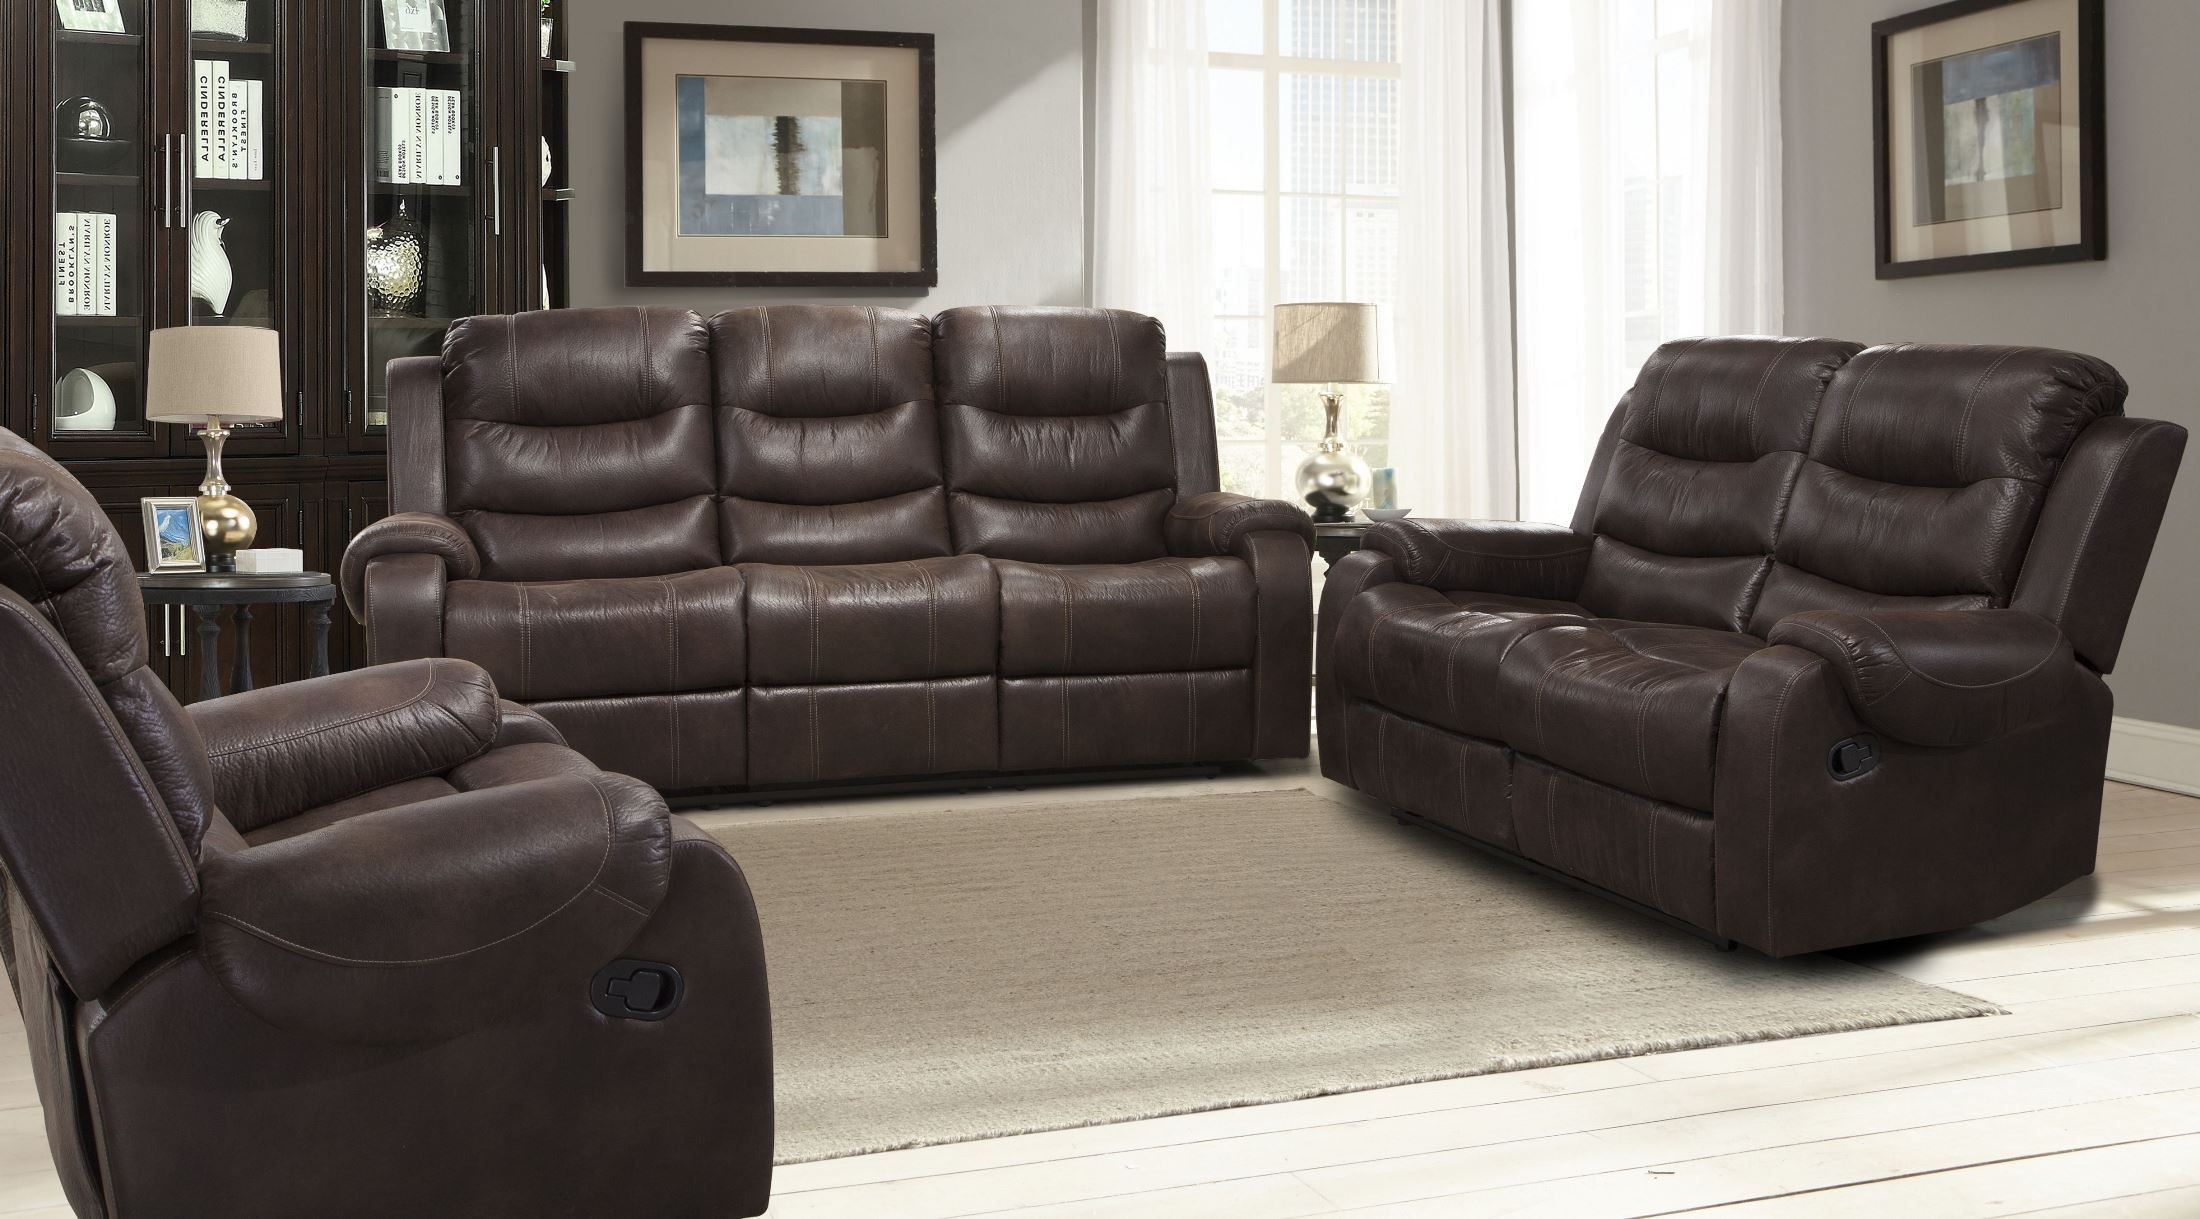 Brahms Mahogany Dual Reclining Living Room Set From Parker Living Mbra 832 Mah Coleman Furniture